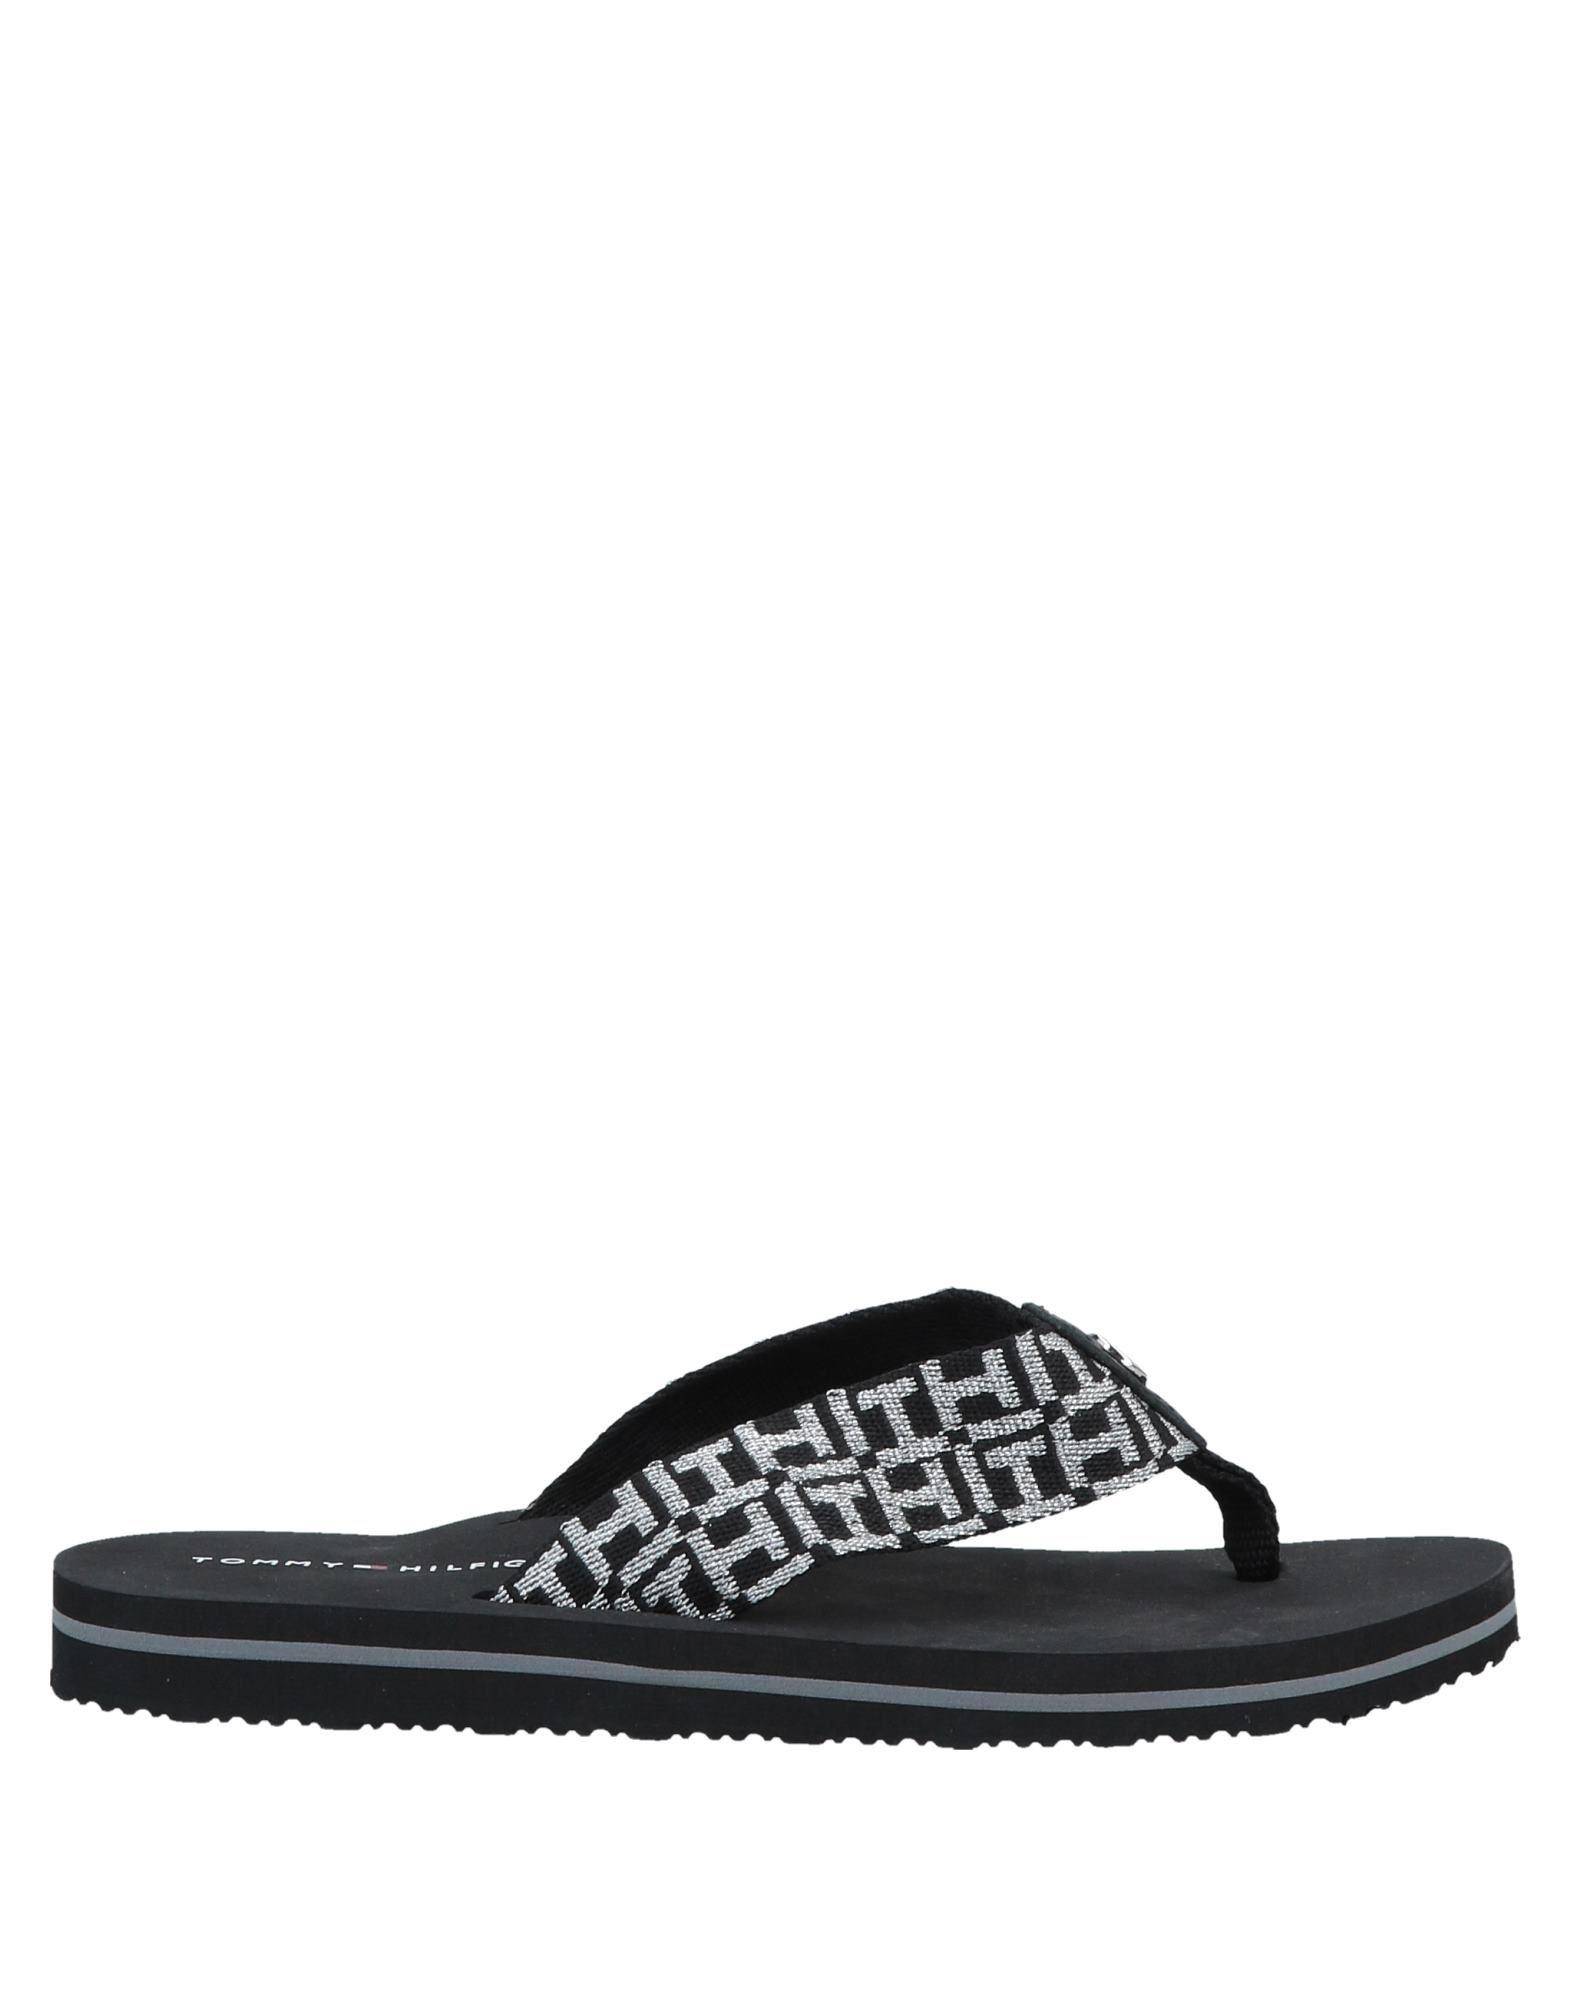 official photos aaa4a 00fd5 tommy-hilfiger-Black-Toe-Strap-Sandal.jpeg